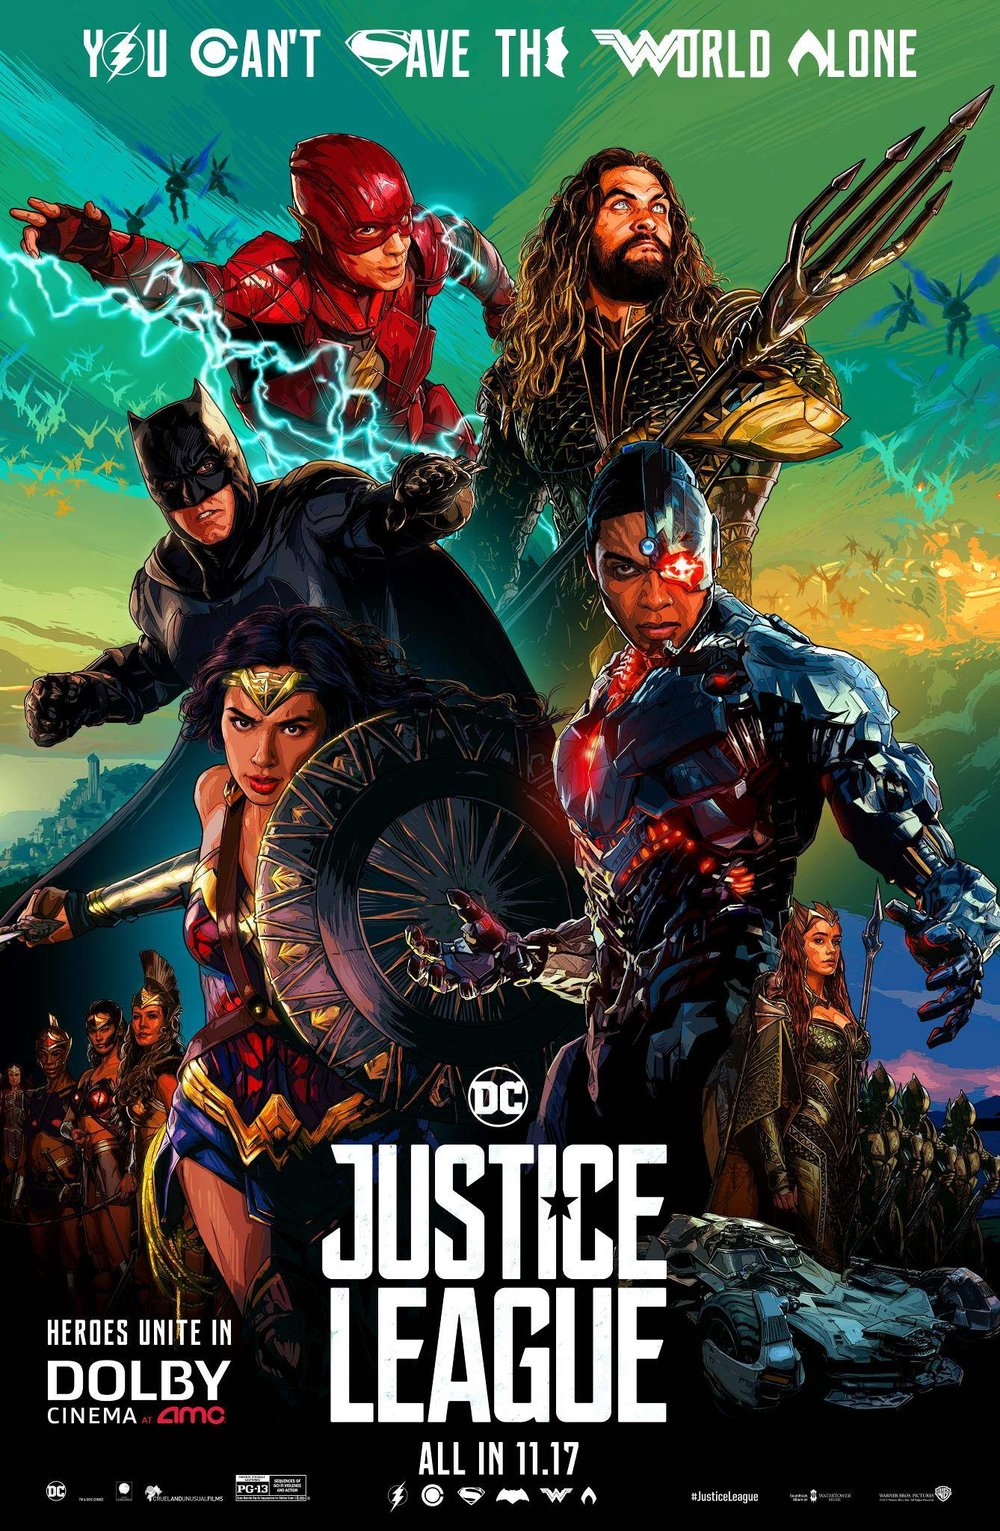 Justice-League-2017-Poster-justice-league-movie-40789722-1338-2048.jpg